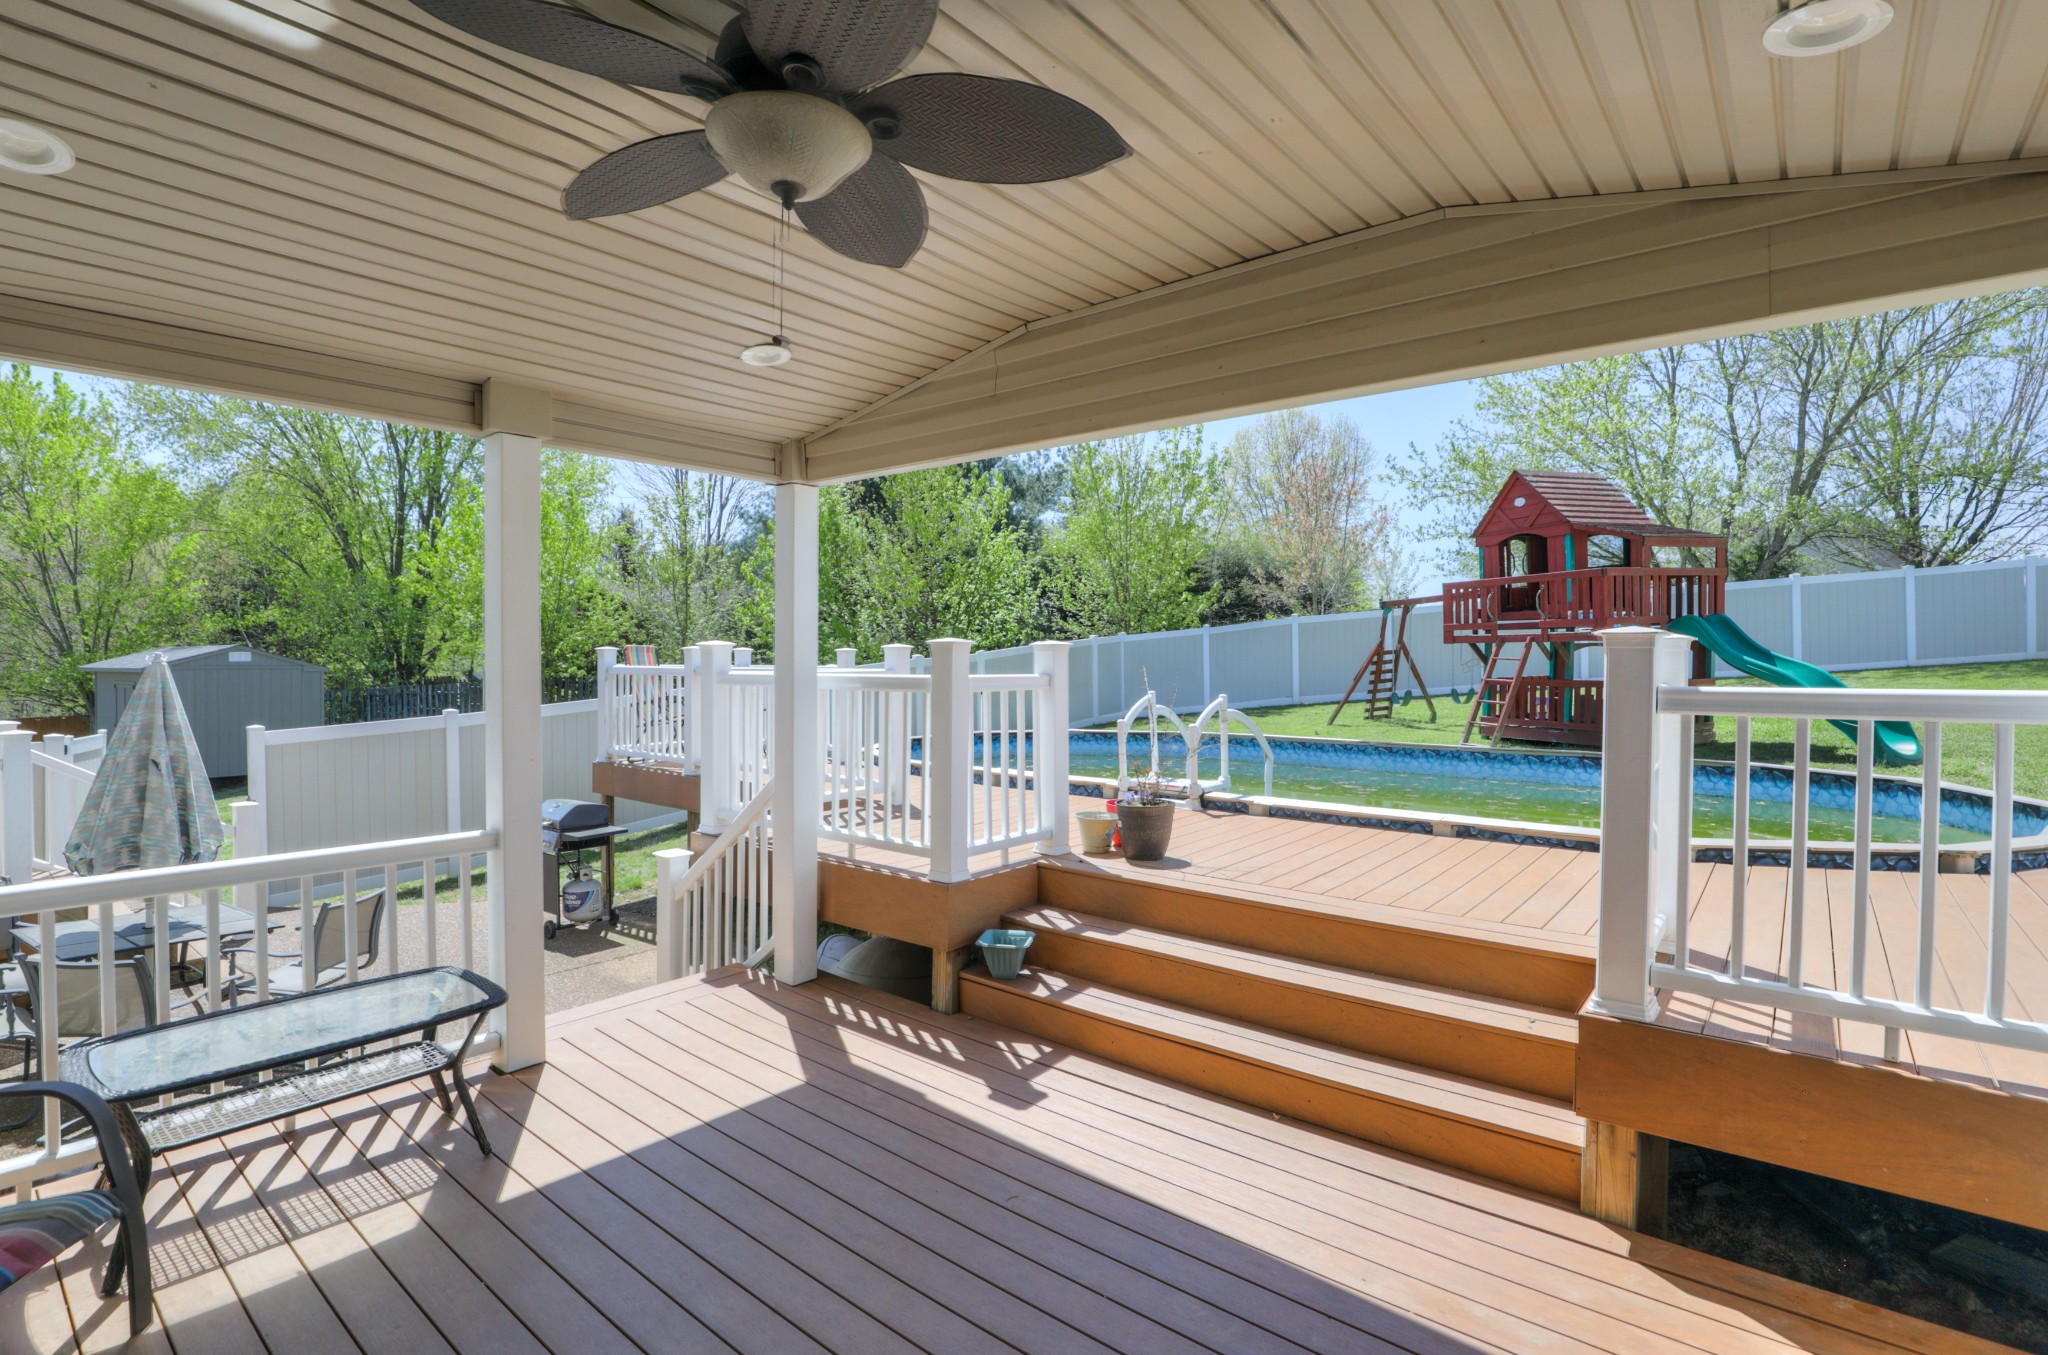 805 Overview Dr, Cottontown, TN 37048 - Cottontown, TN real estate listing